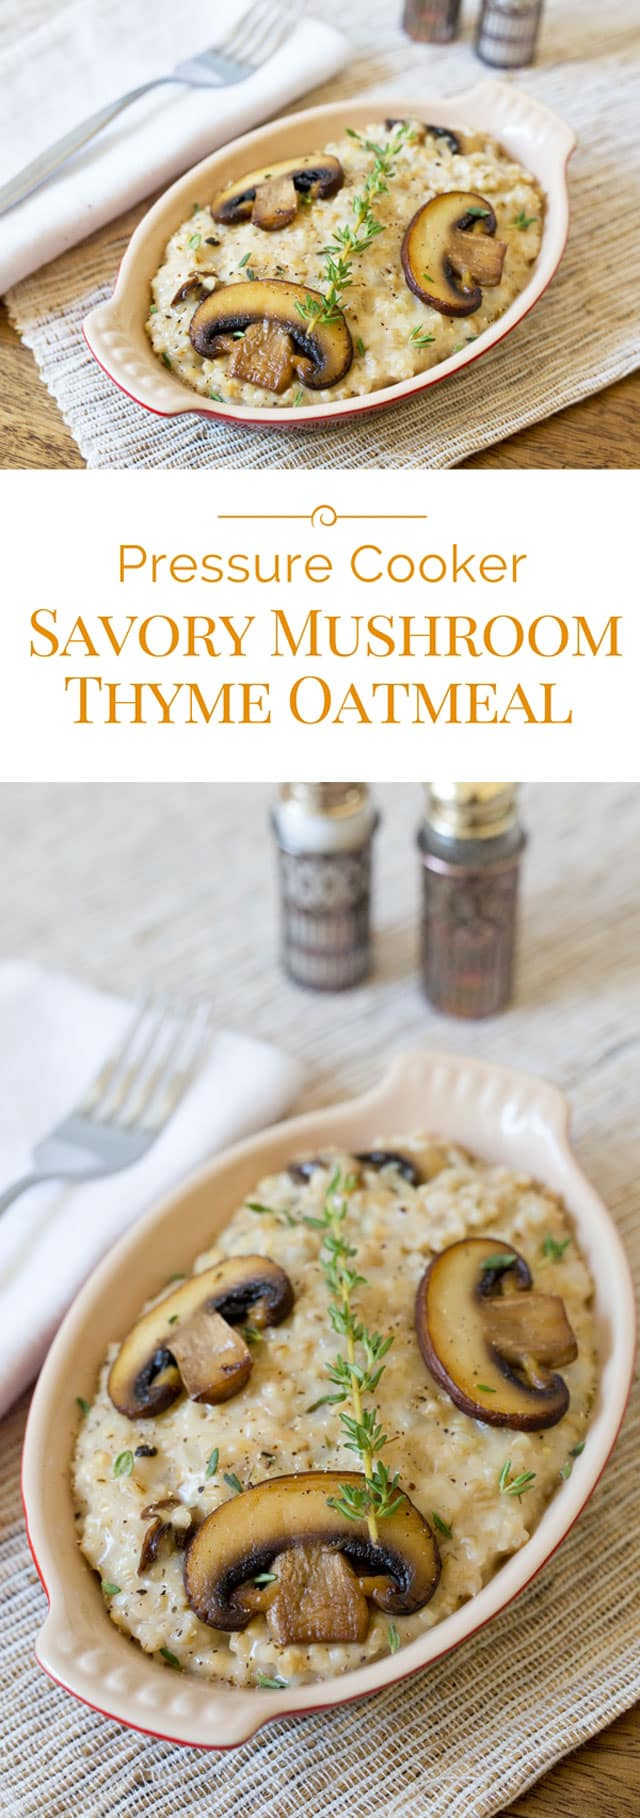 Savory-Mushroom-Thyme-Oatmeal-Collage-Pressure-Cooking-Today